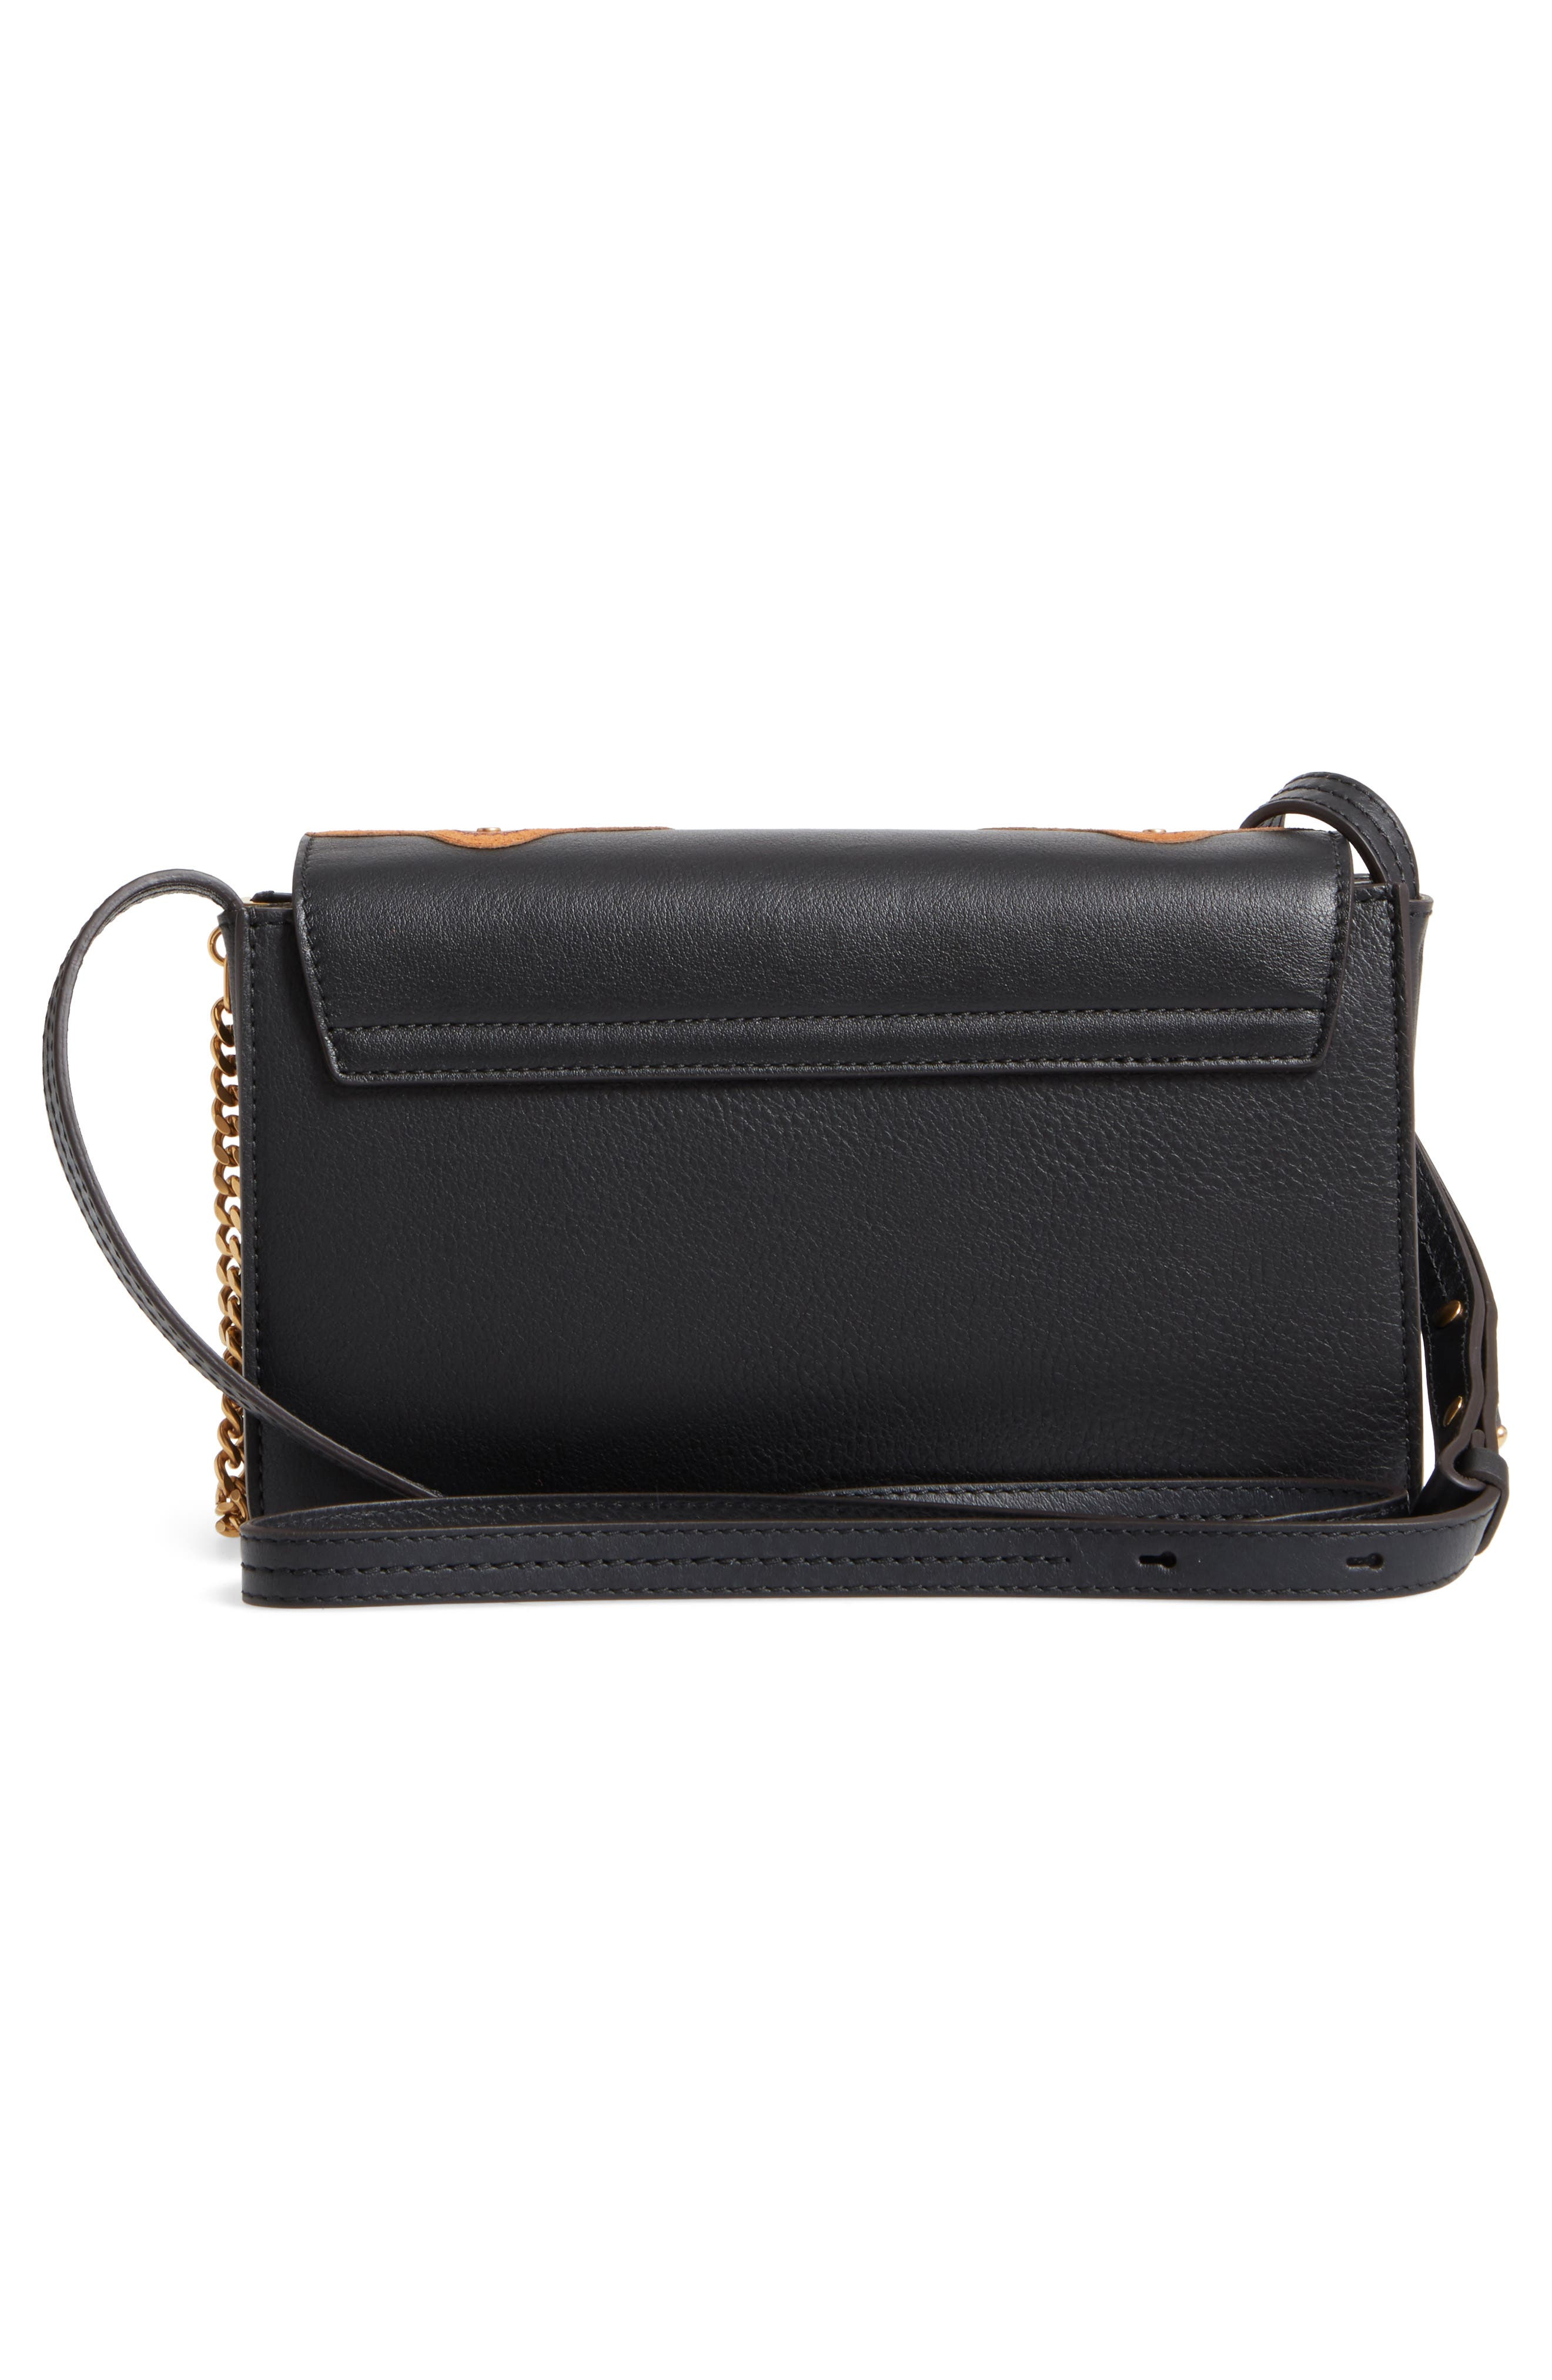 Small Faye Studded Leather & Suede Crossbody Bag,                             Alternate thumbnail 3, color,                             001